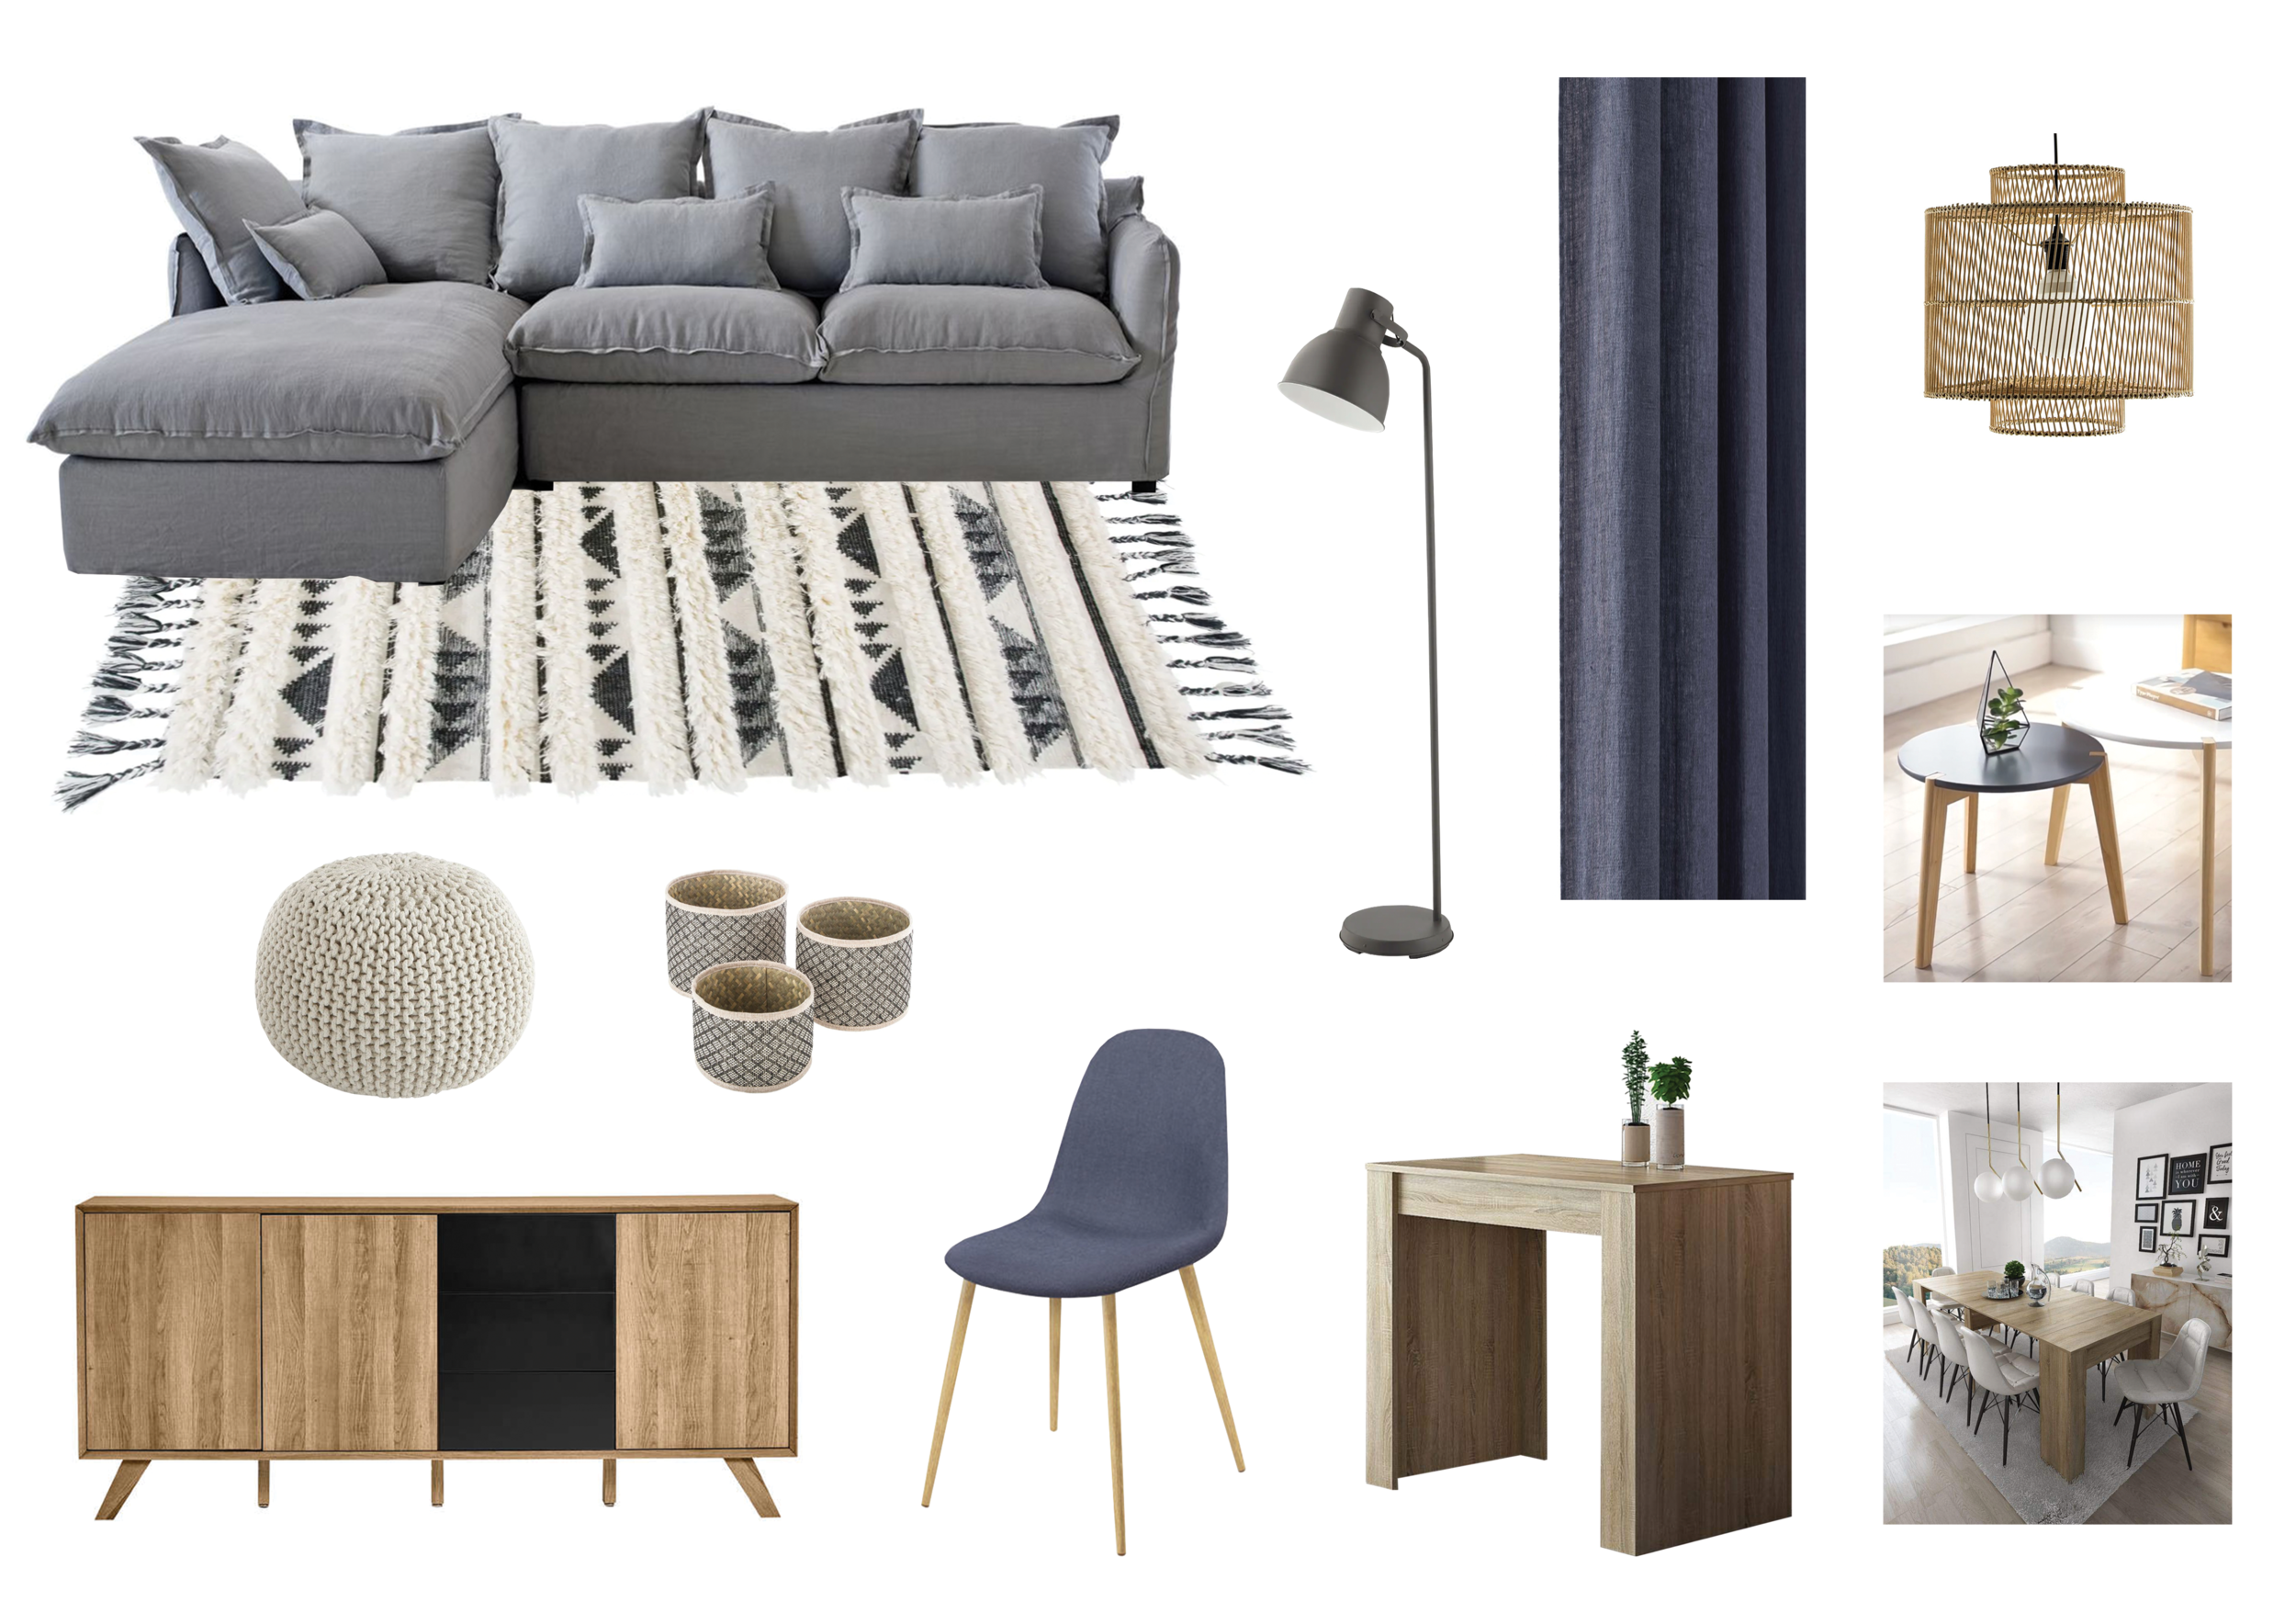 colombes planche mobilier principale CANAPE LIN.png